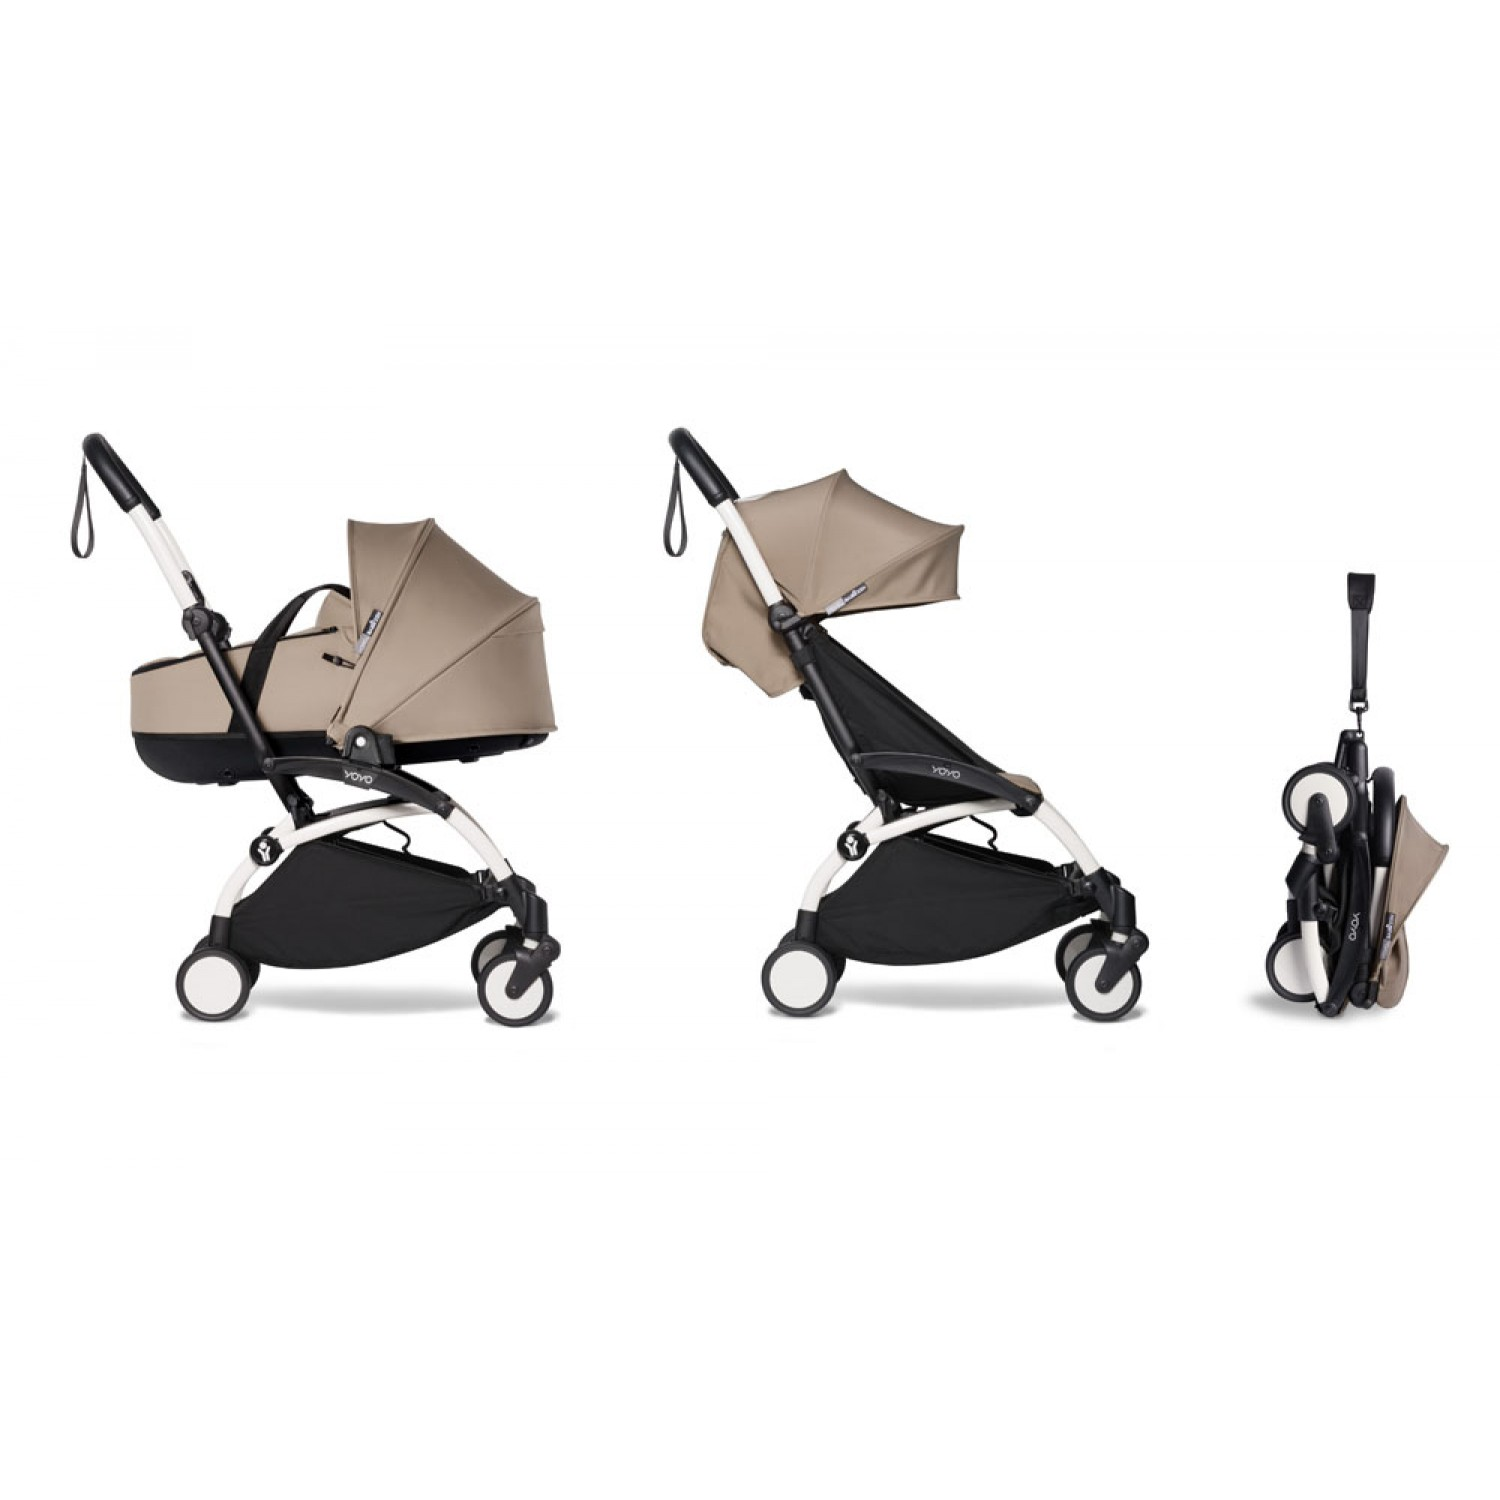 Complete BABYZEN stroller YOYO2 bassinet and 6+ White Frame | Taupe